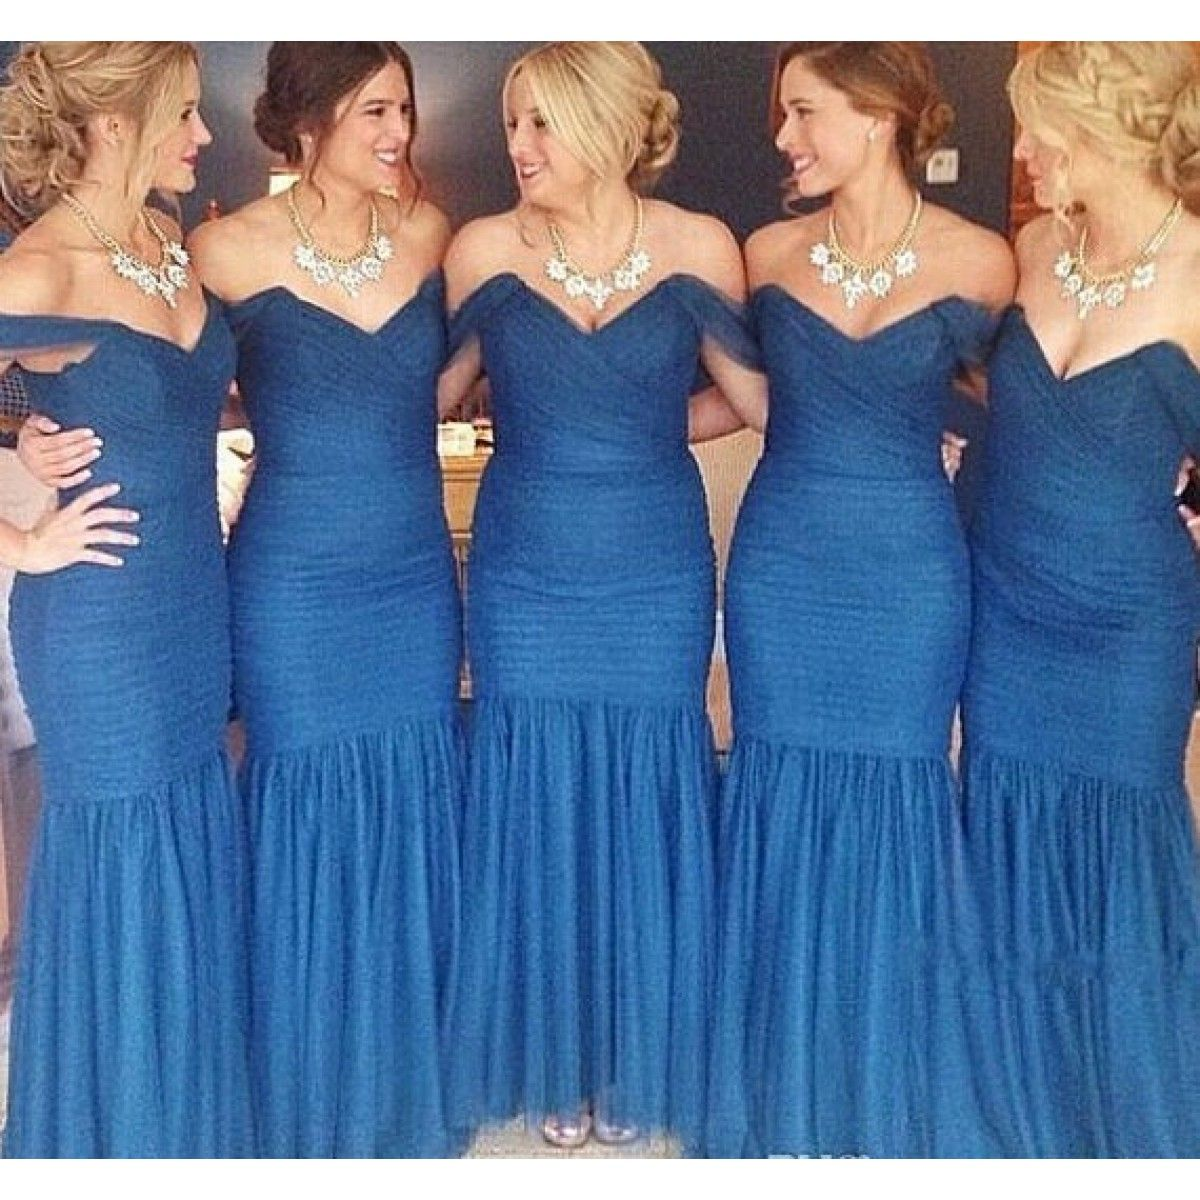 Exquisite mermaid sweetheart straps royal blue tulle bridesmaid a variety of hot selling wedding dresses prom dressesspecial occasion dresses accessories and so on at reasonable prices and shipping them globally ombrellifo Images